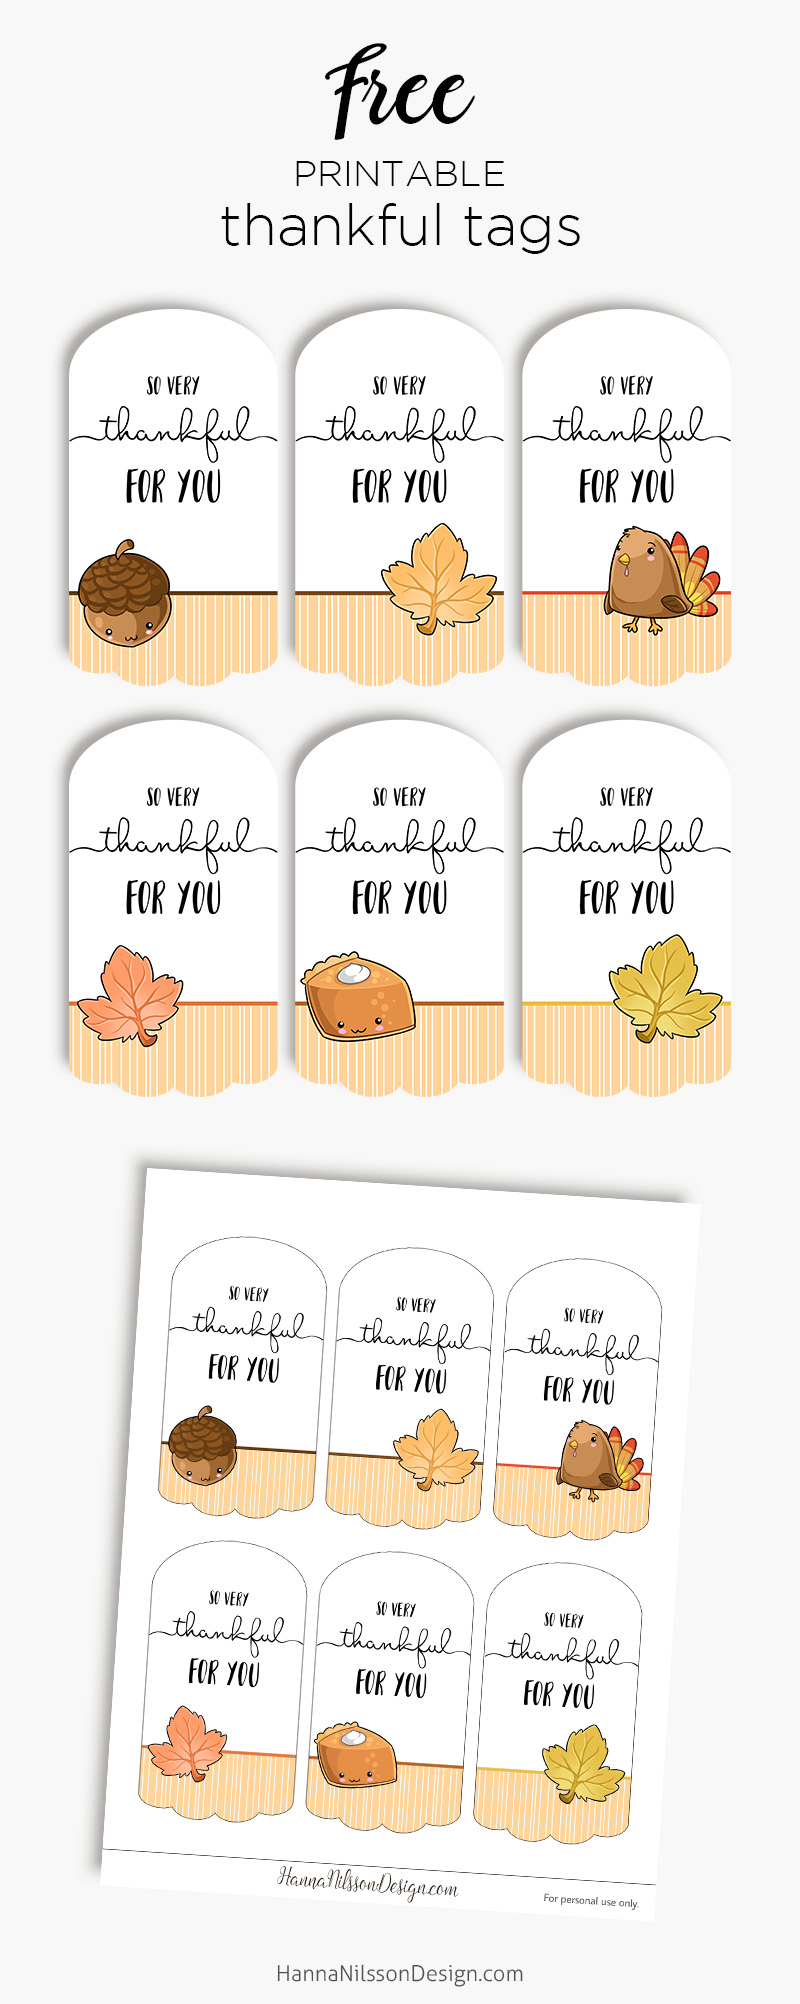 graphic relating to Free Printable Thanksgiving Tags referred to as Grateful for yourself tags Cost-free printable tags for thanksgiving